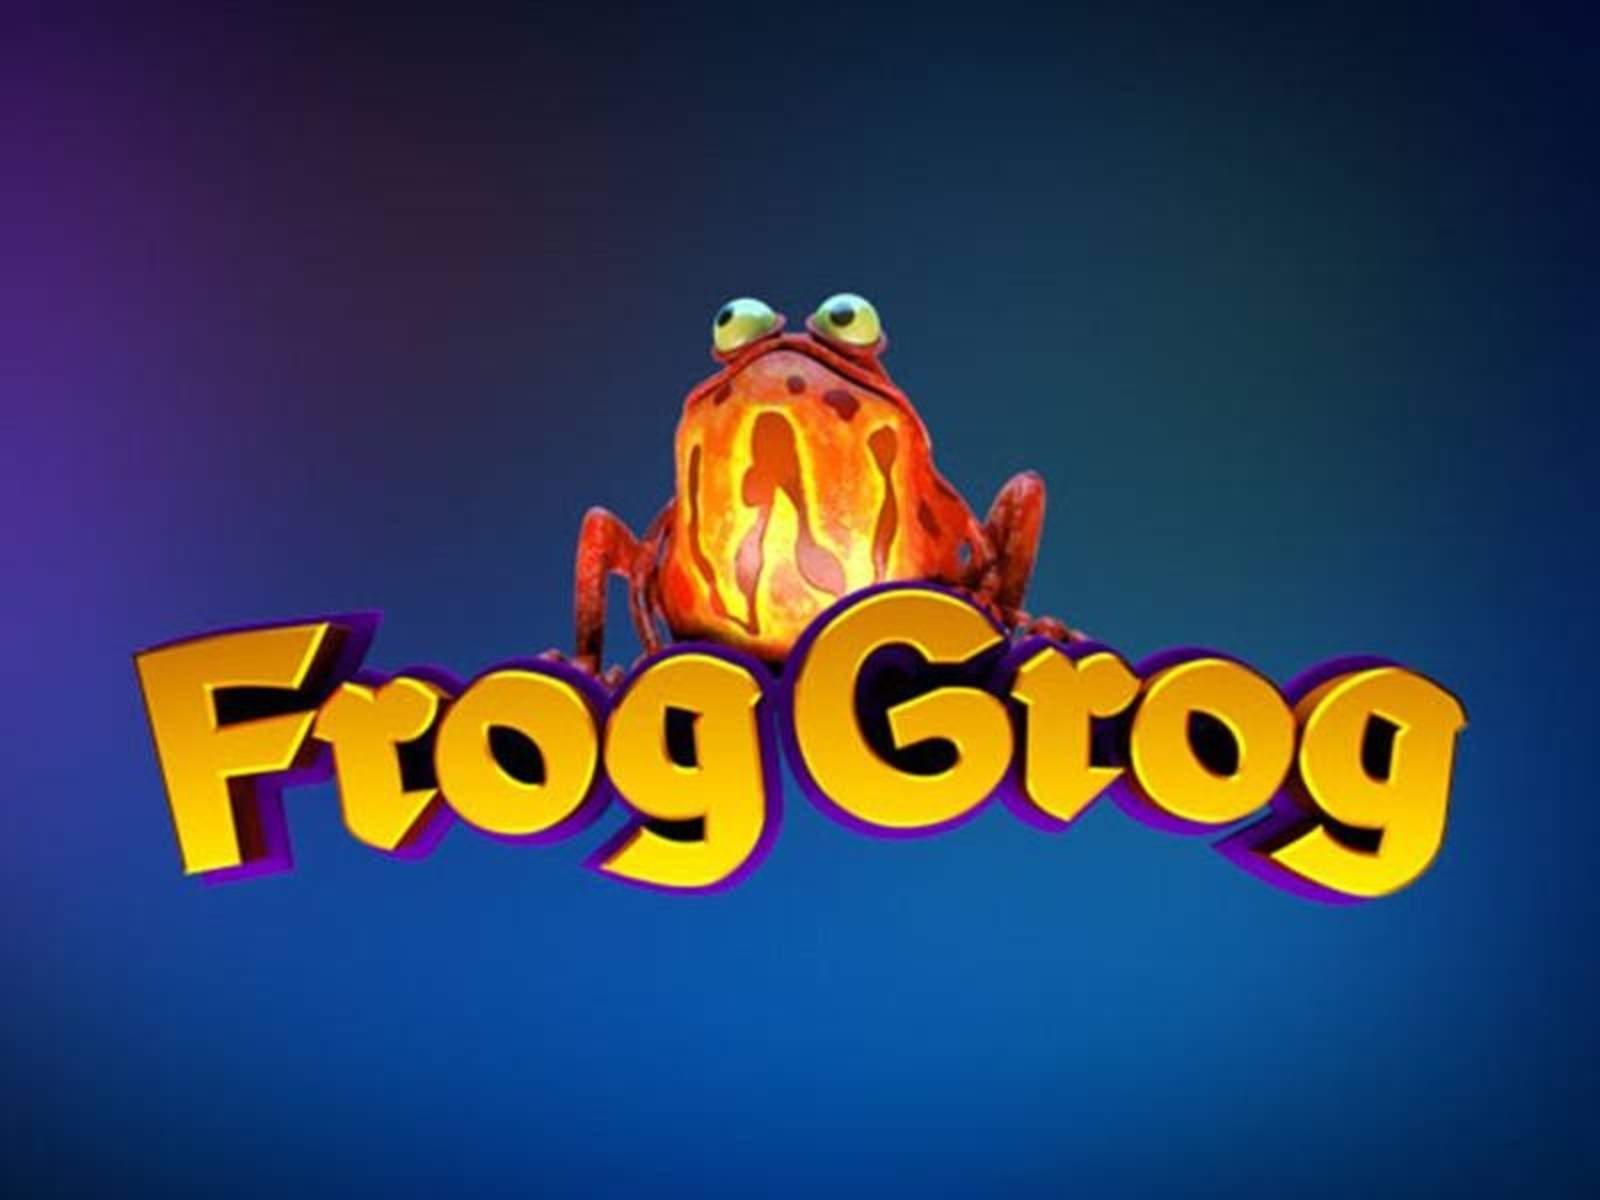 Frog Grog Online Slot Demo Game by Thunderkick